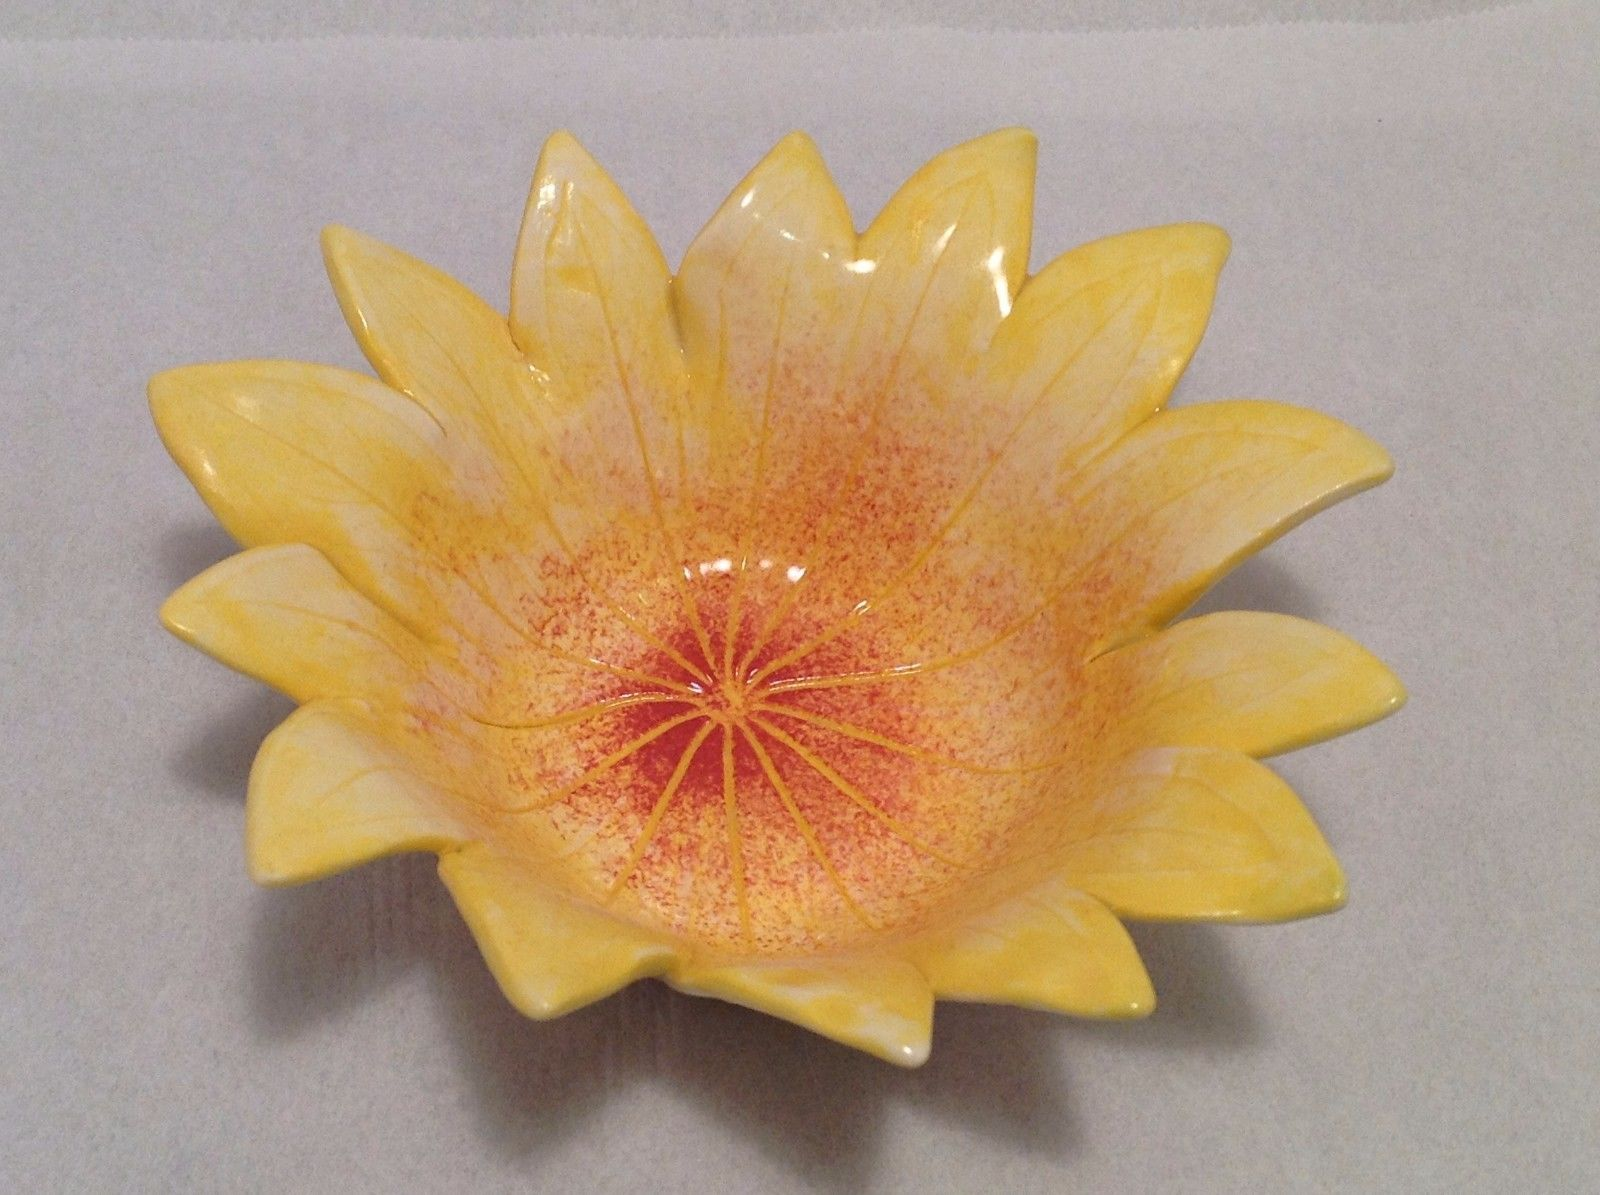 Hand Made ceramic Leaf Bowl with Lupine impression Perfect snack or citrus bowl